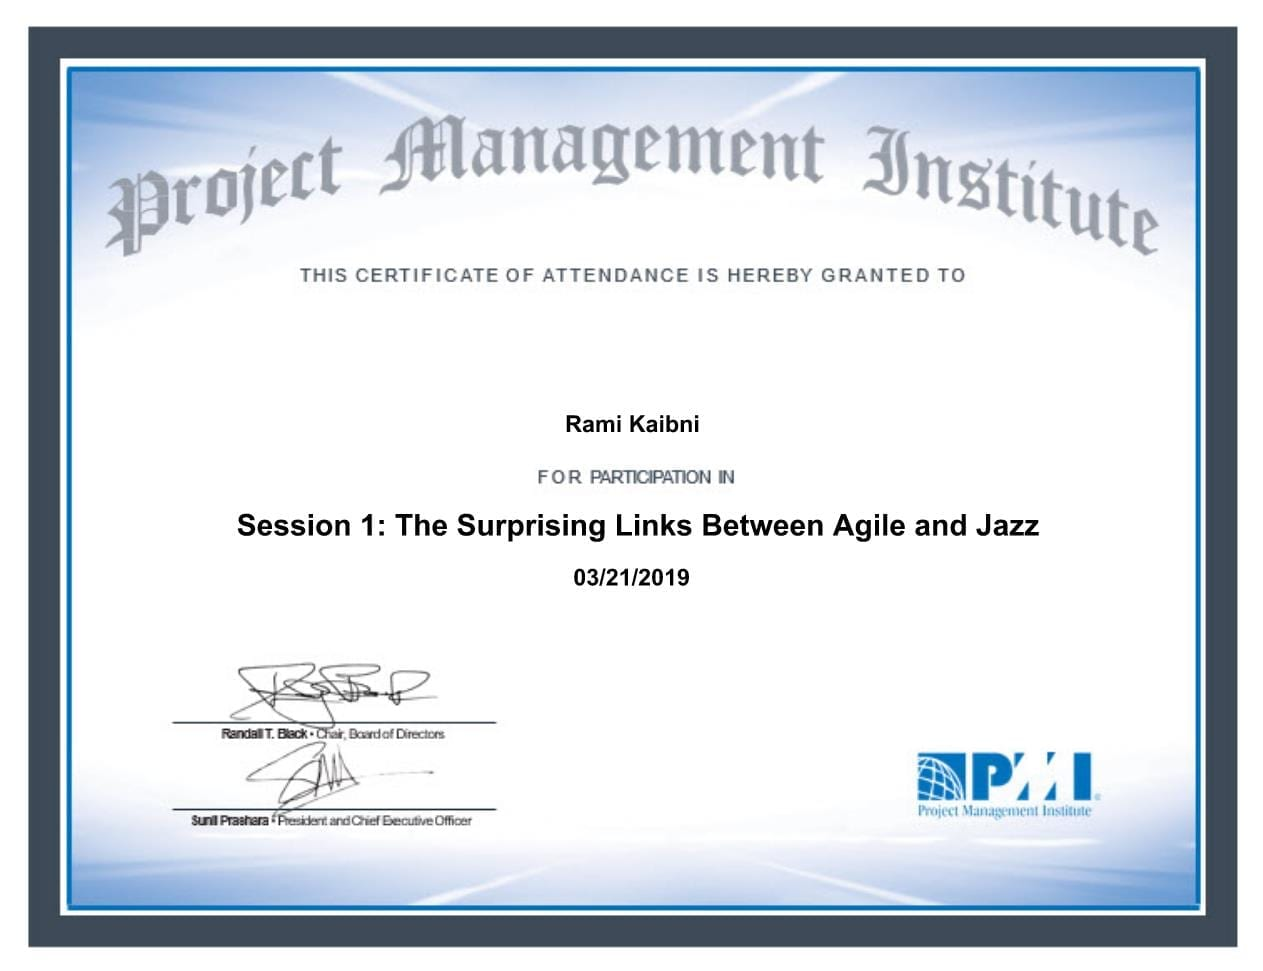 Session 1 - The Surprising Links Between Agile and Jazz